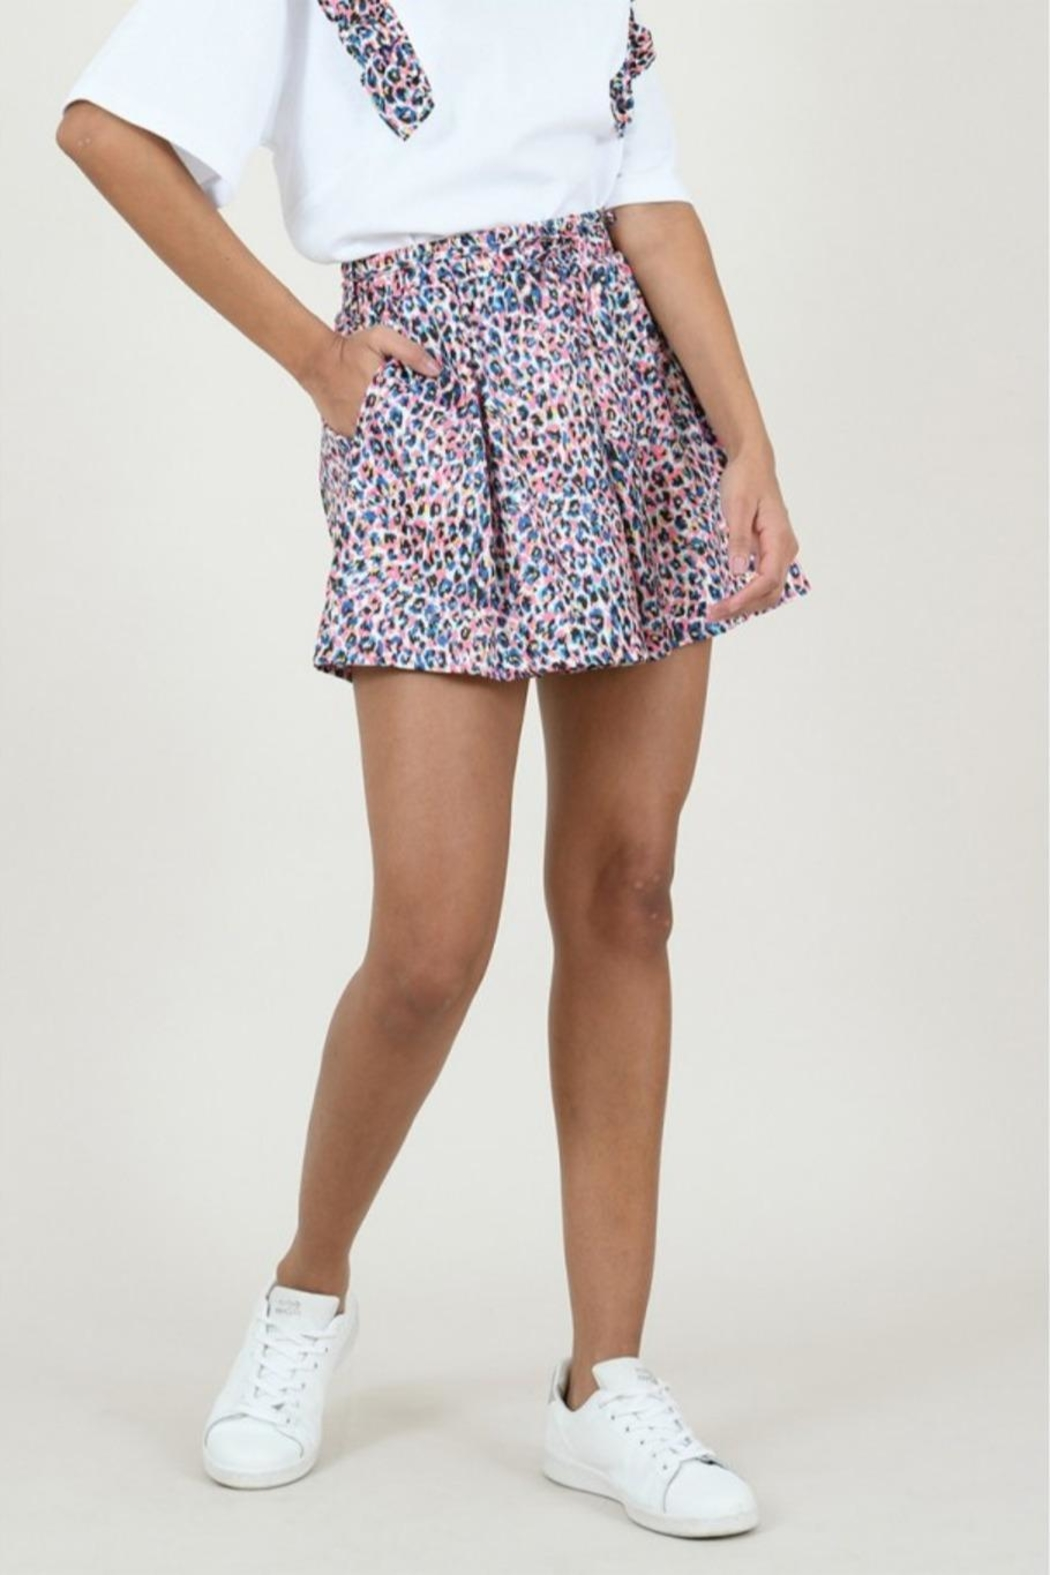 Molly Bracken Panther Print Short - Back Cropped Image